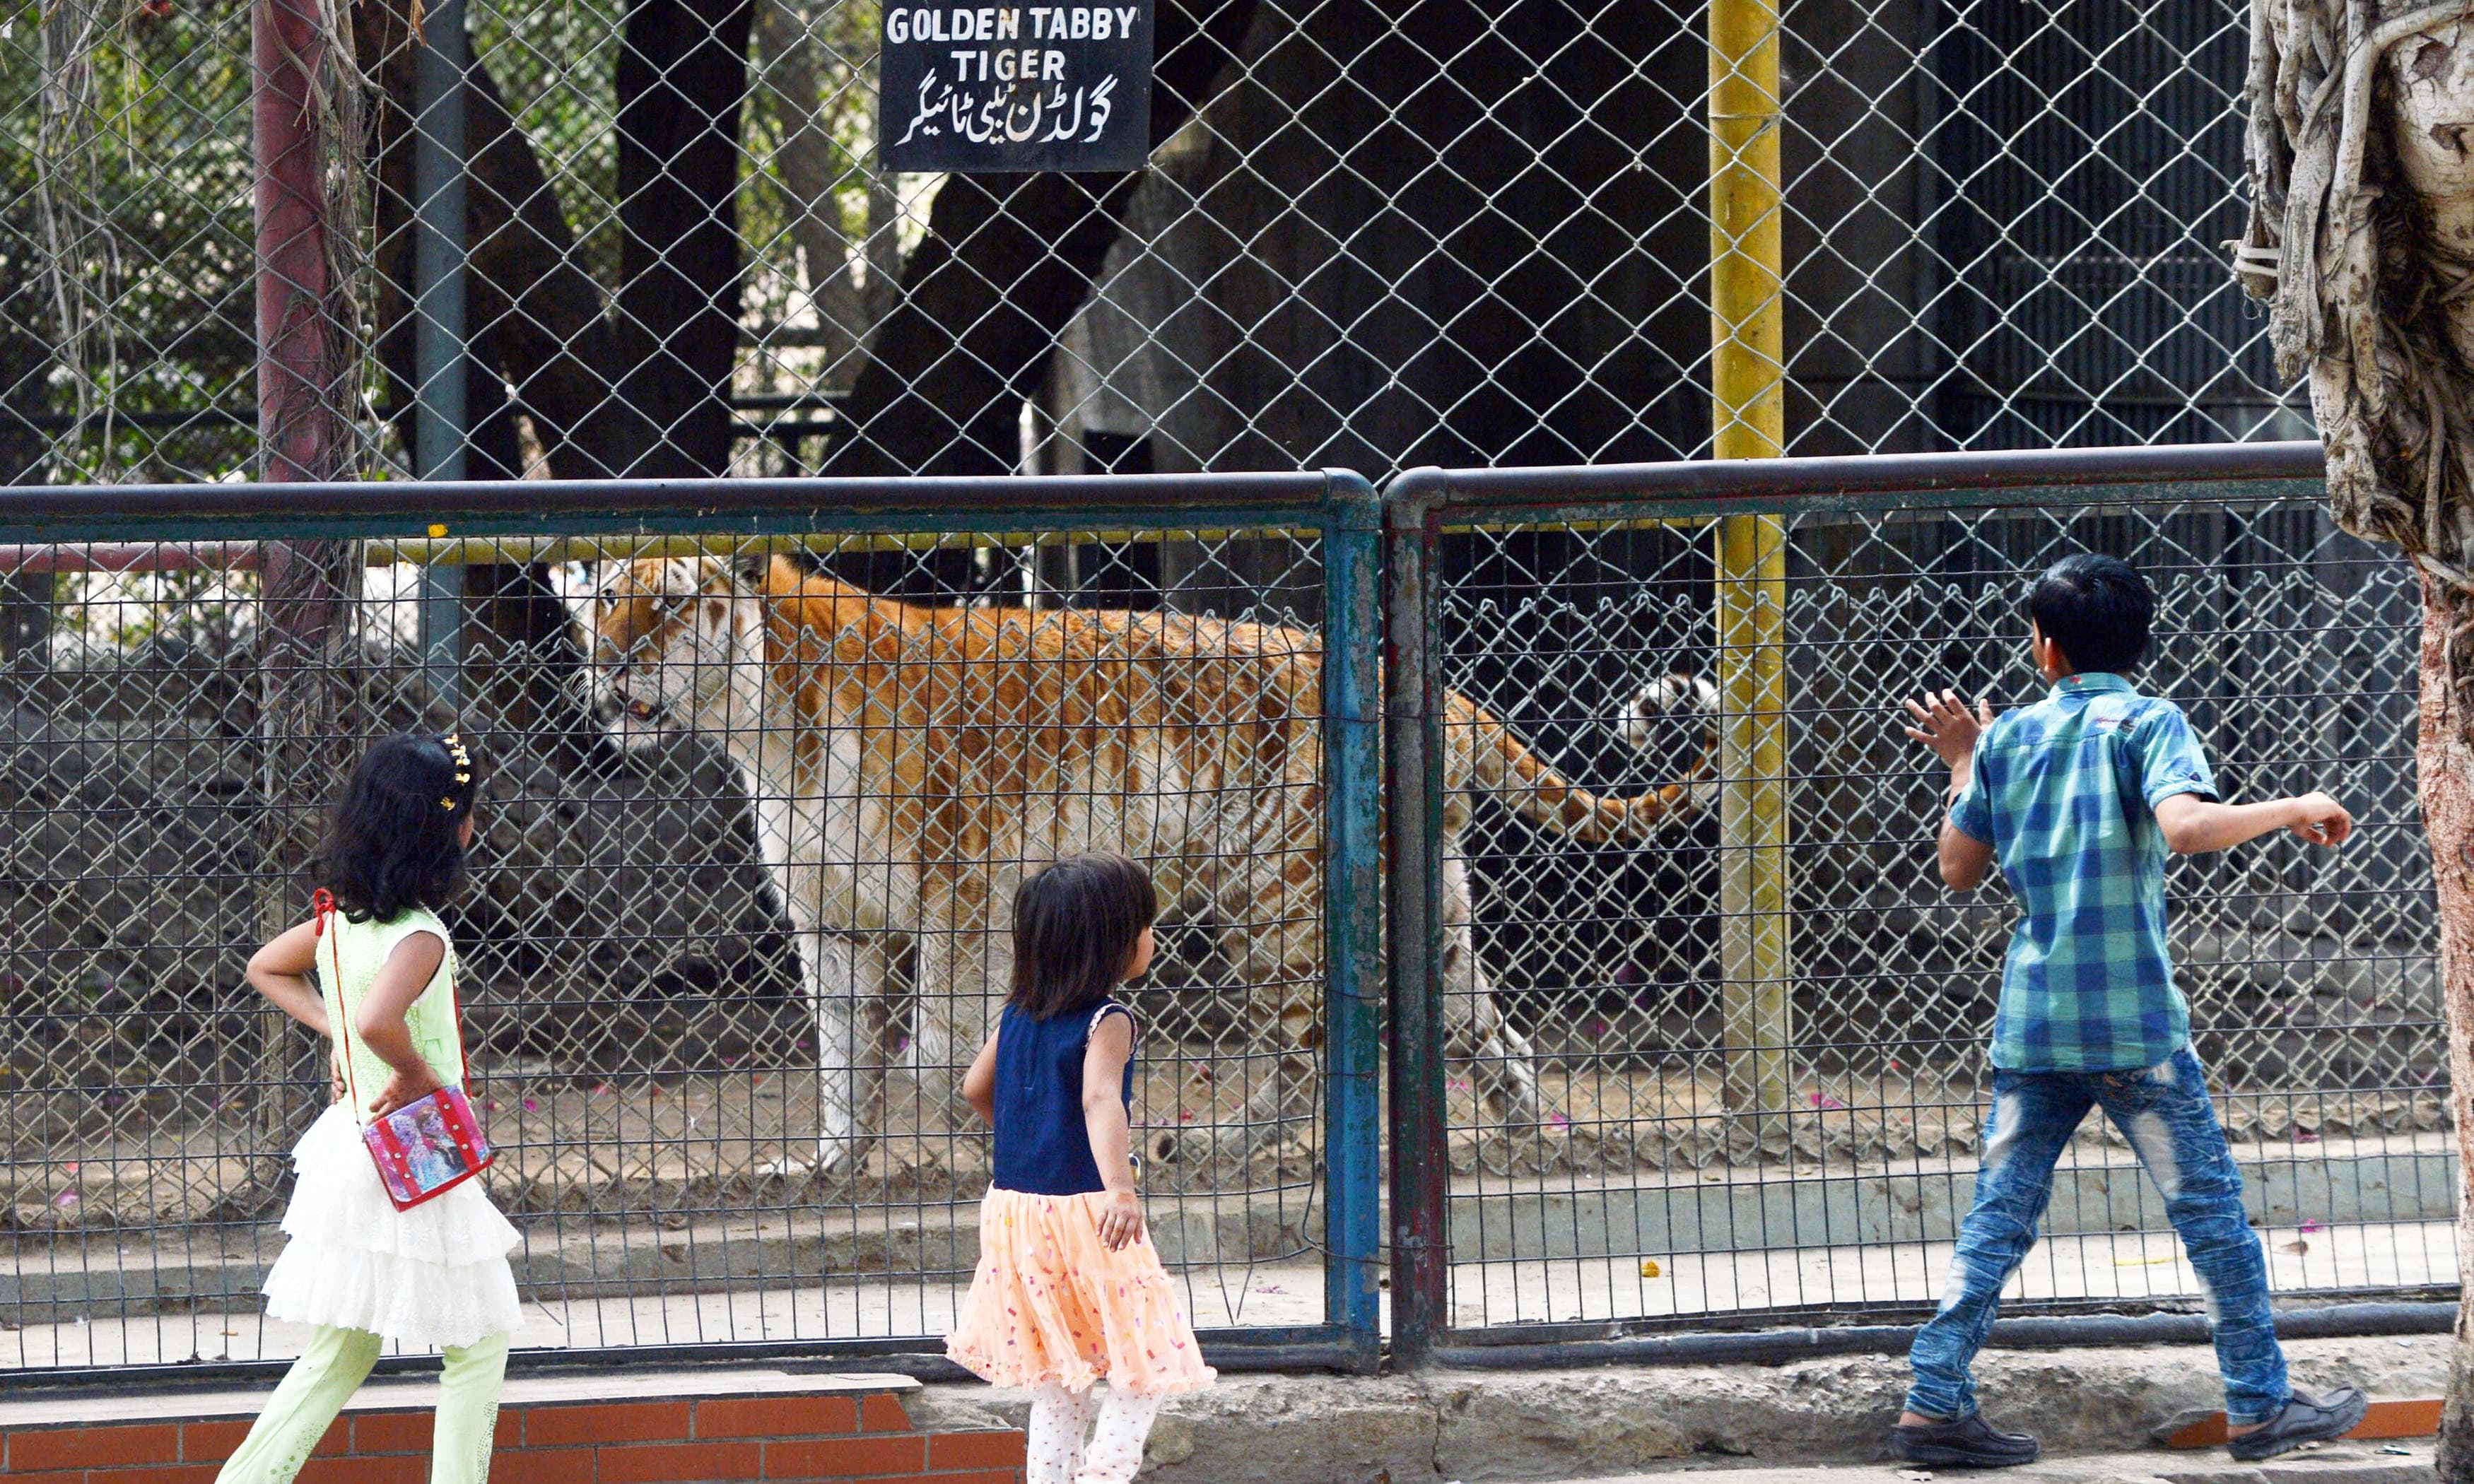 Children look at a tiger in a cage at the Karachi Zoological Garden. —AFP